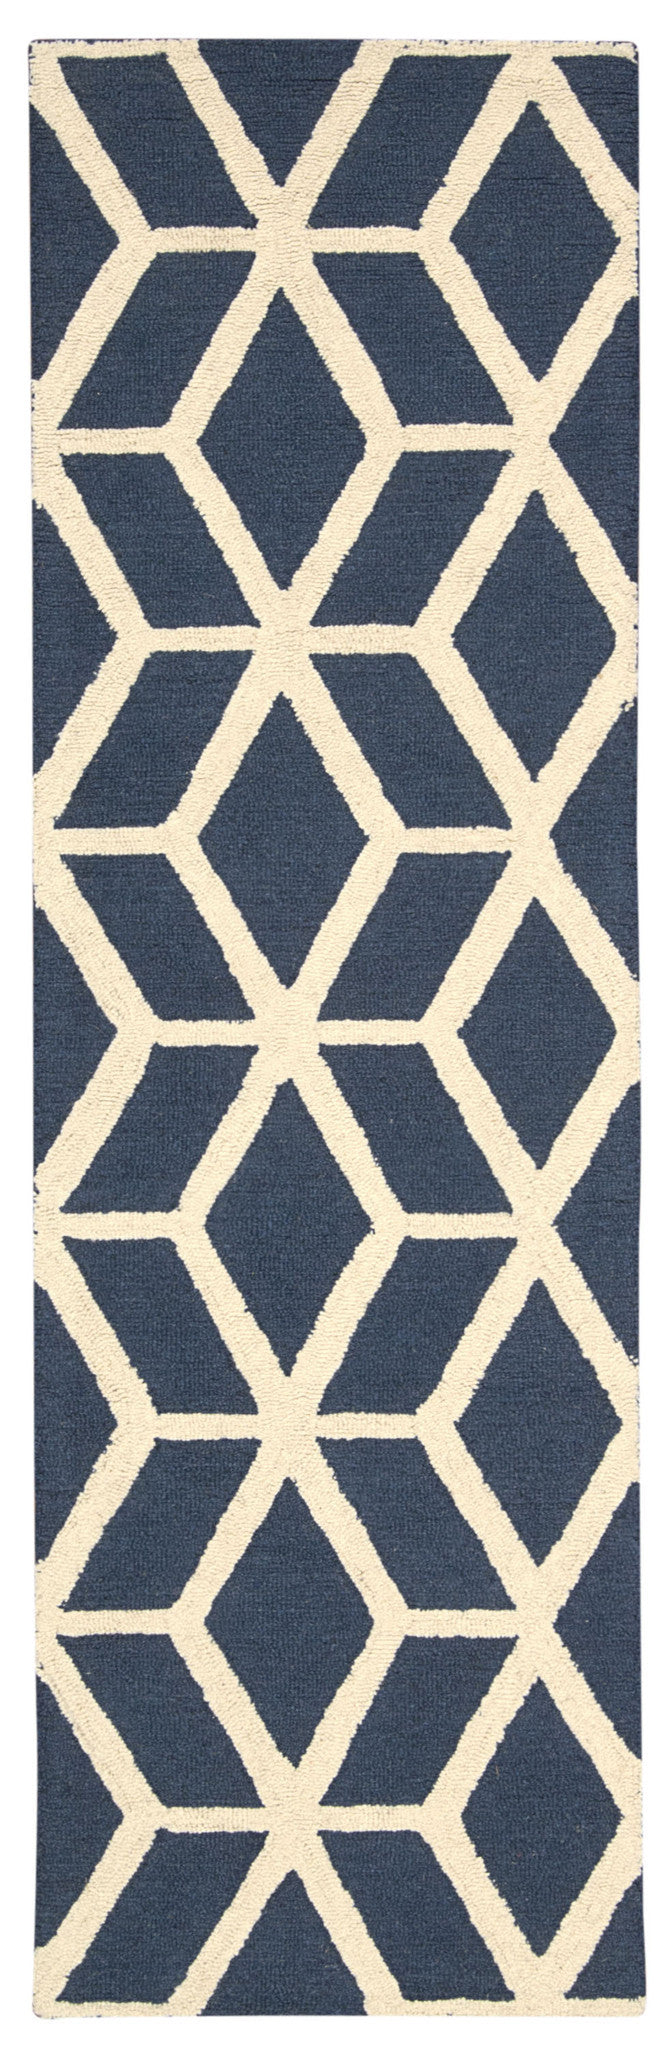 Nourison Linear Blue Ivory Area Rug LIN01 BLUIV